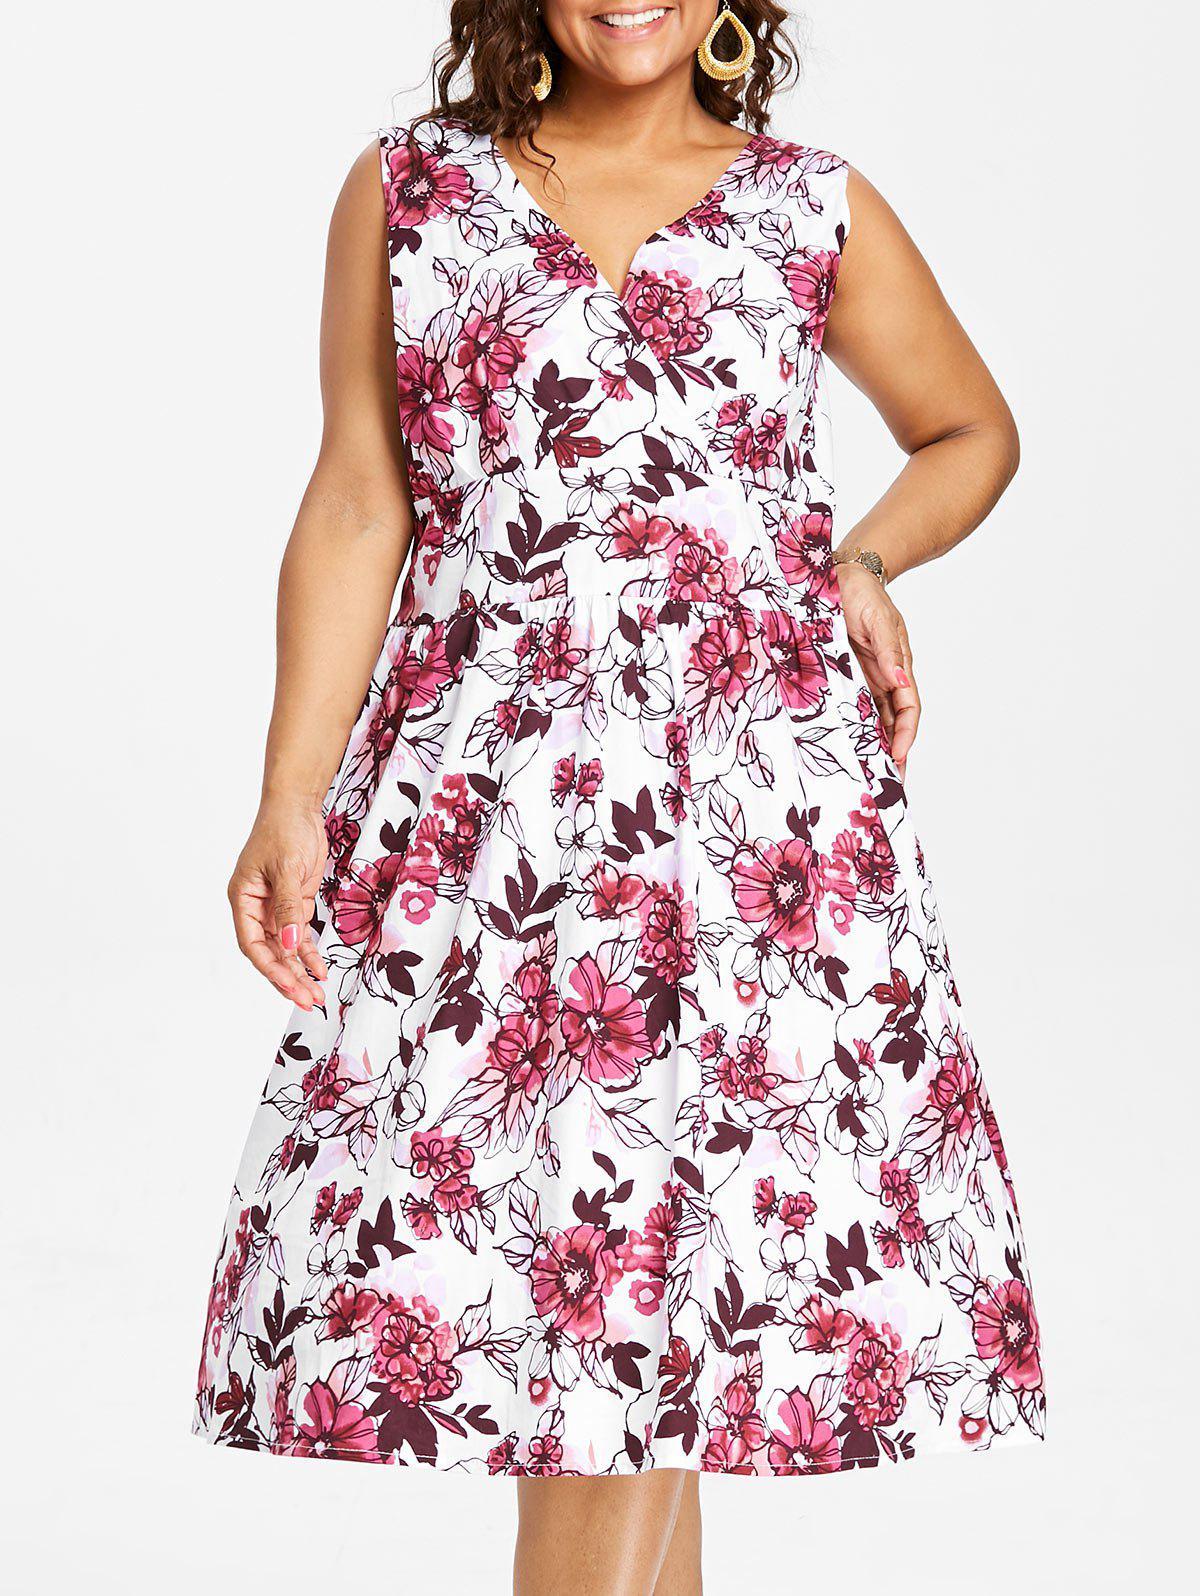 Chic Plus Size Sleeveless Fit and Flare Dress